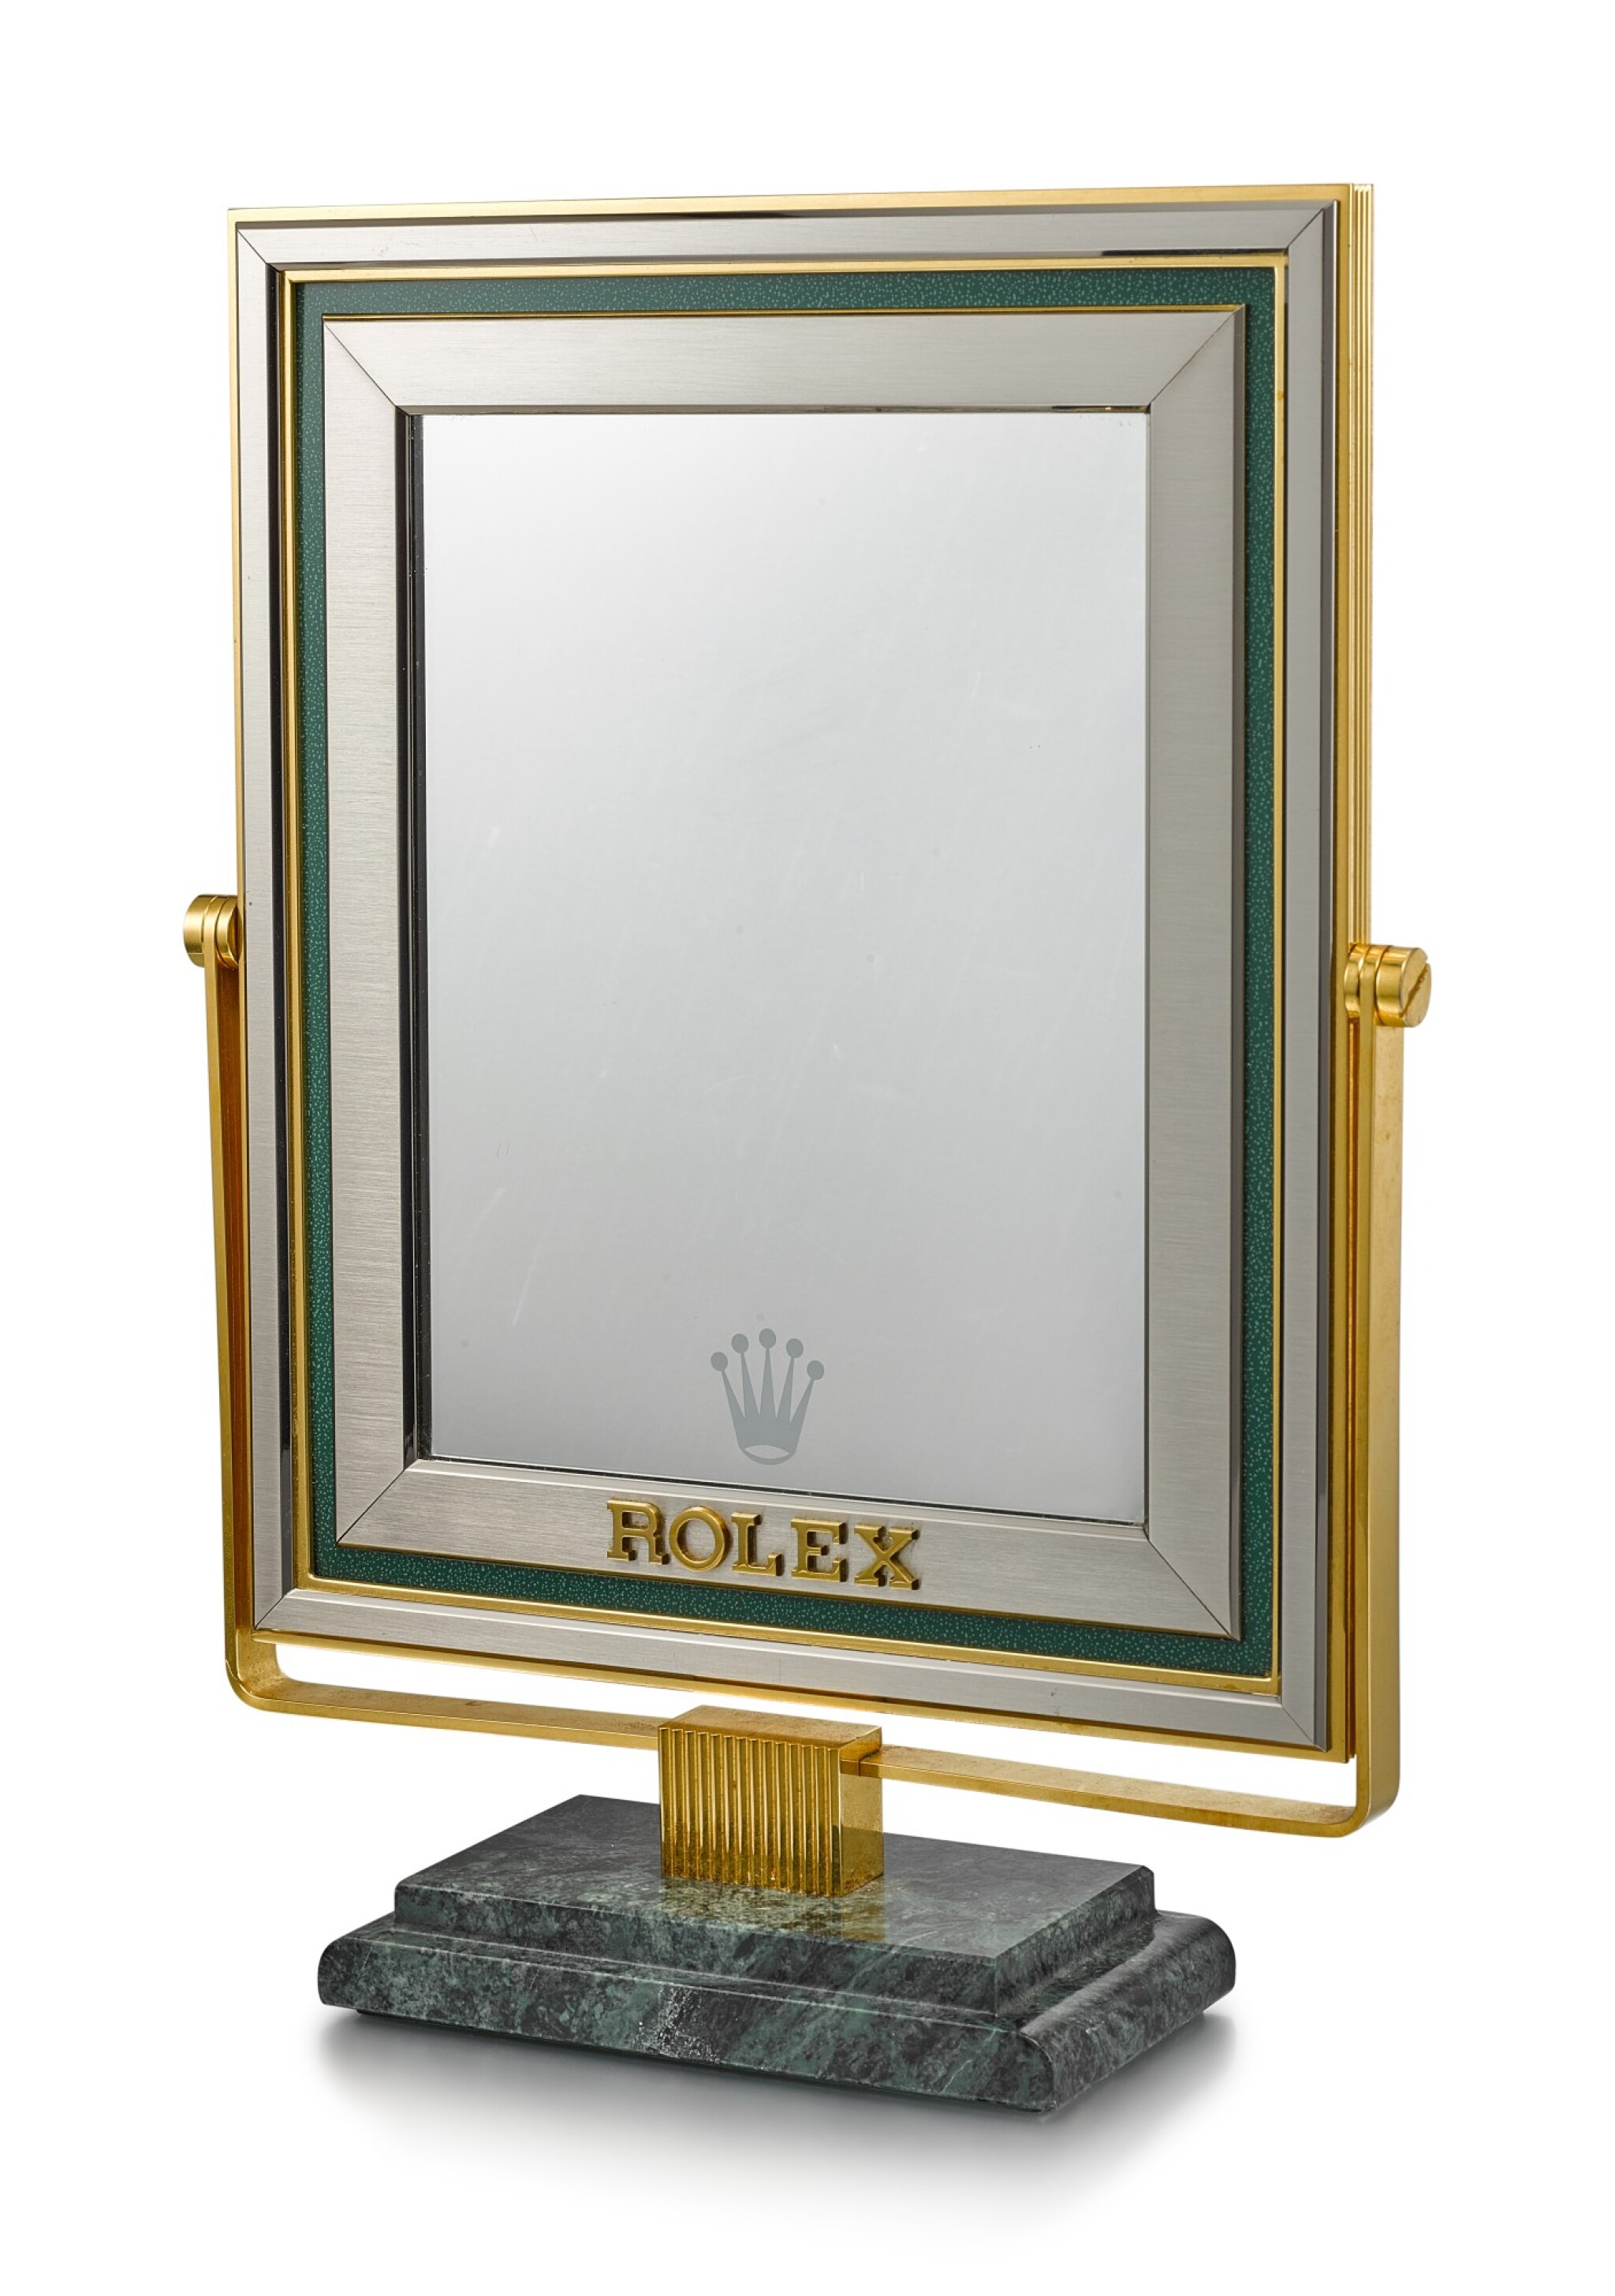 View full screen - View 1 of Lot 8138. ROLEX   A RETAILER'S DISPLAY MIRROR WITH MARBLE STAND, CIRCA 1980.